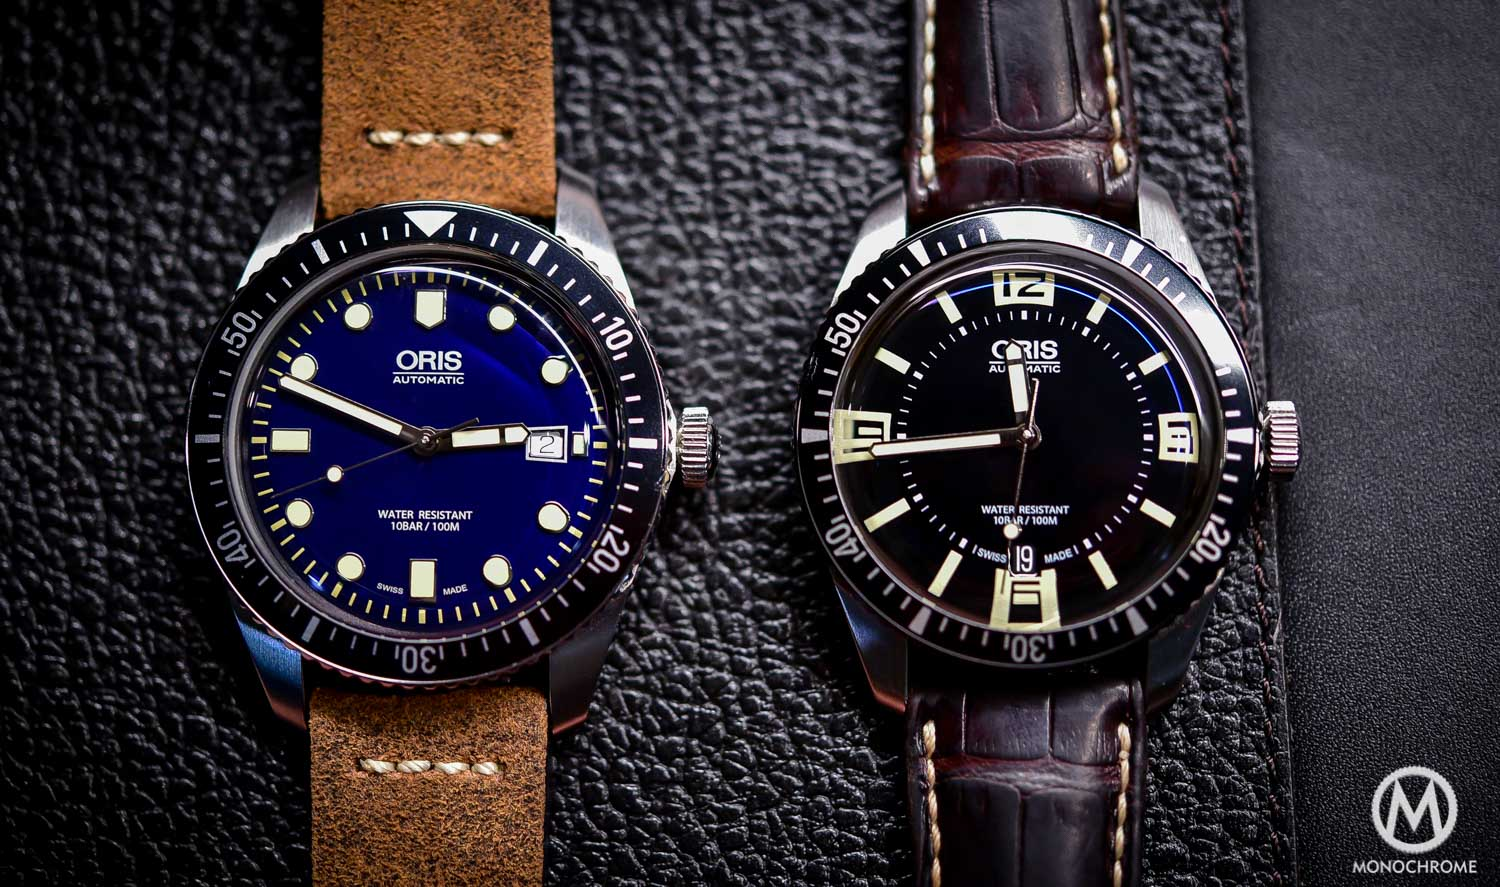 3f7e539c8ff First watch - Longines Conquest vs Tag Heuer Aquaracer WAY - Page 3